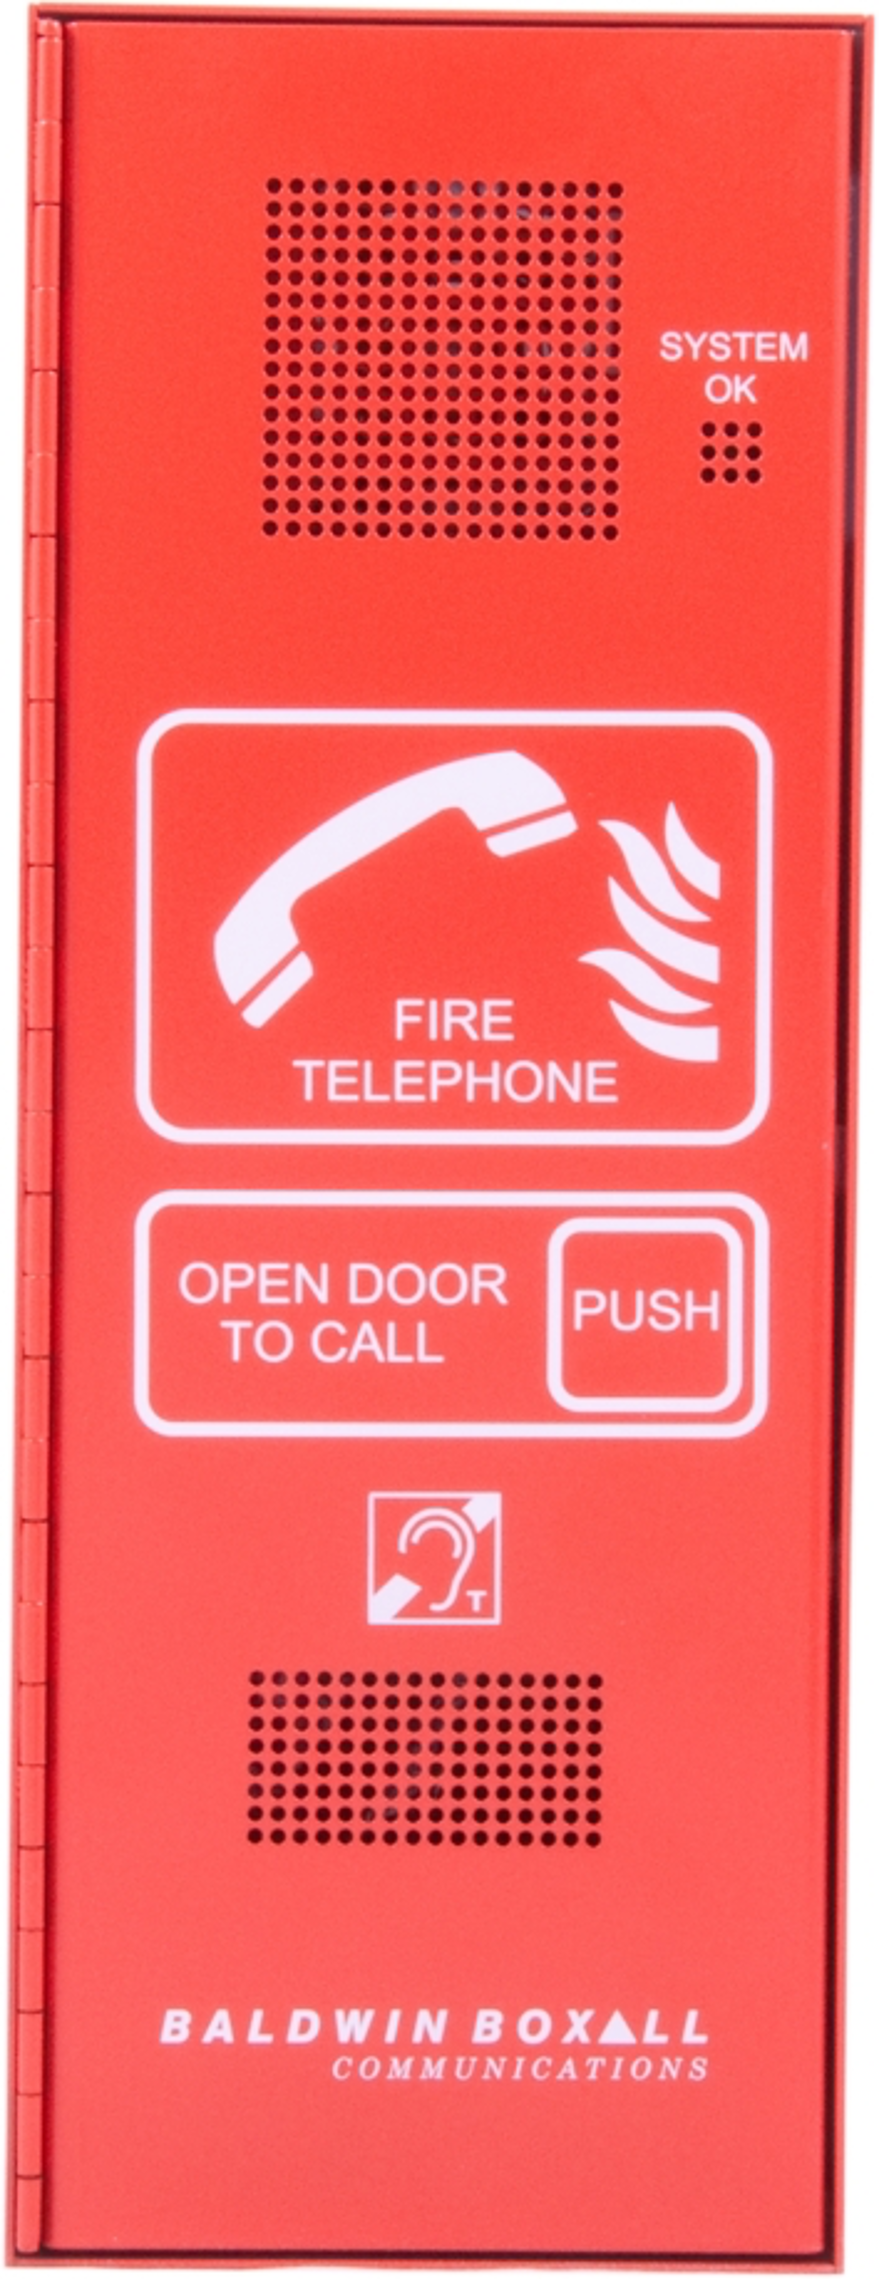 Baldwin Boxall OmniCare BVOCFB Type-A Fire Telephone with Push Door and Beacon Red